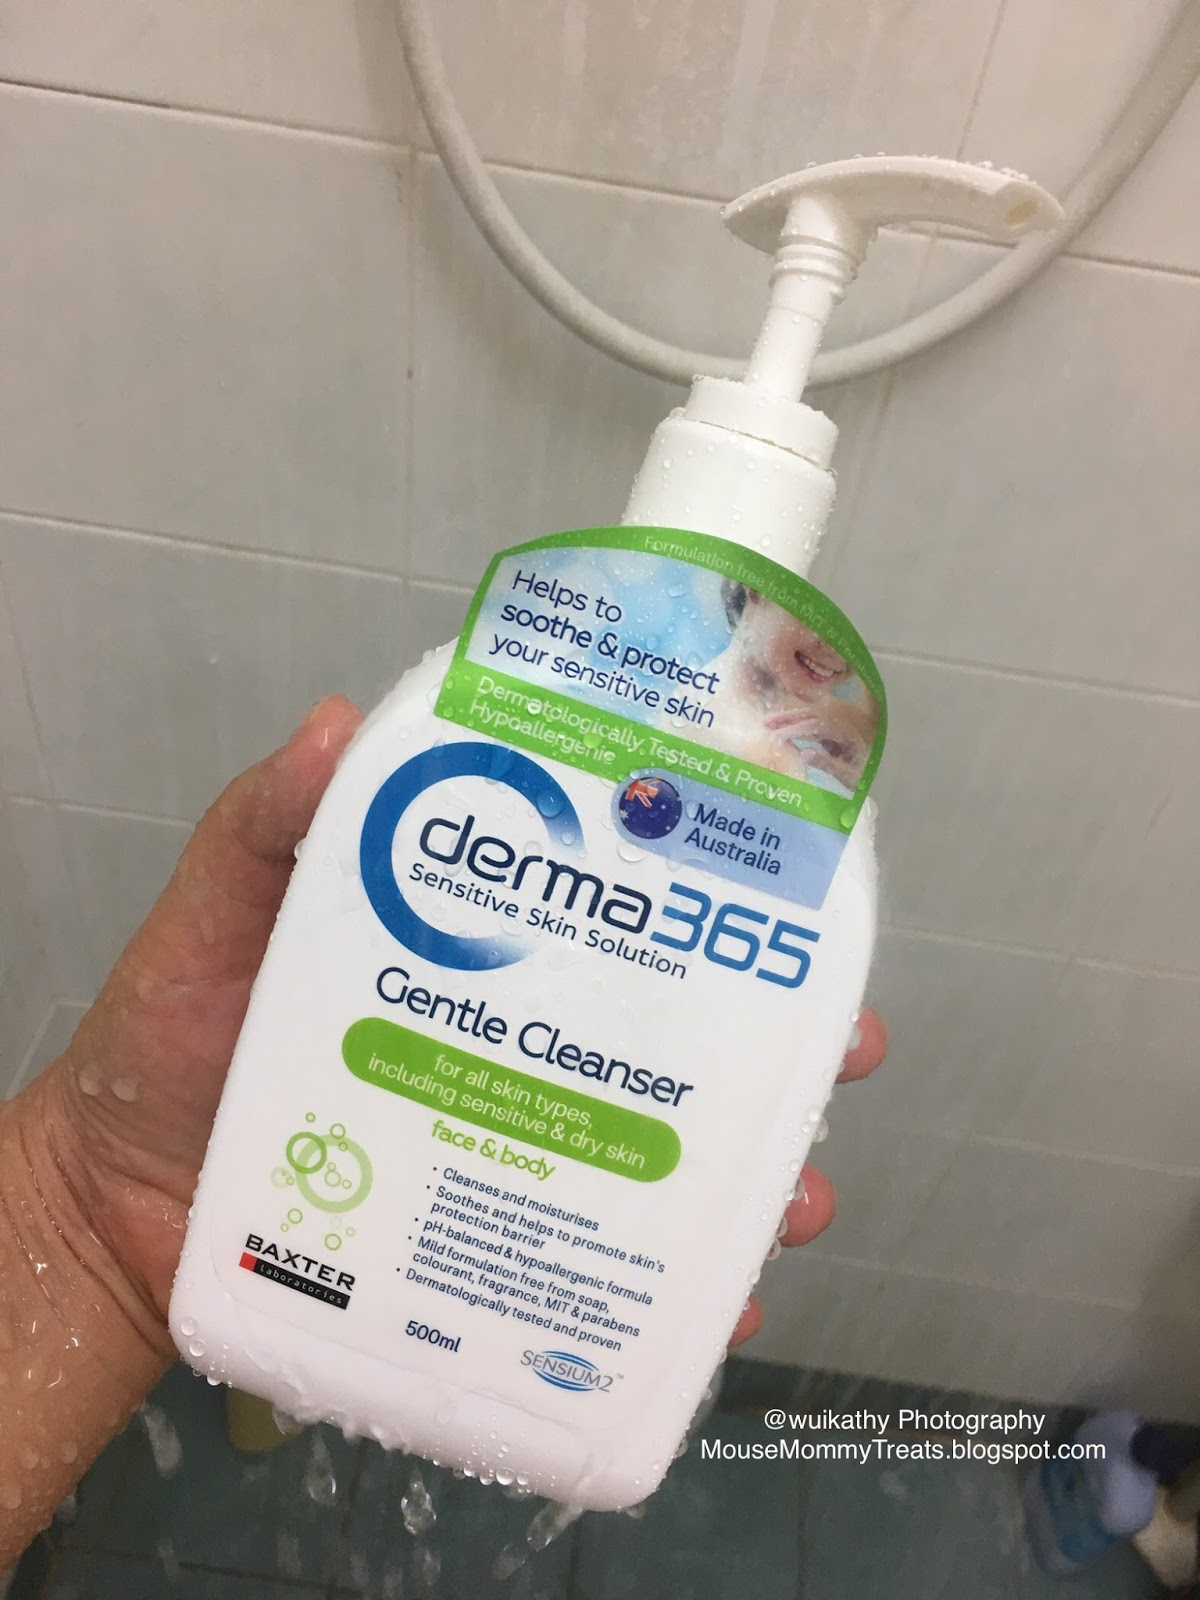 Love My New derma365 Care For The Whole Family! - Mouse